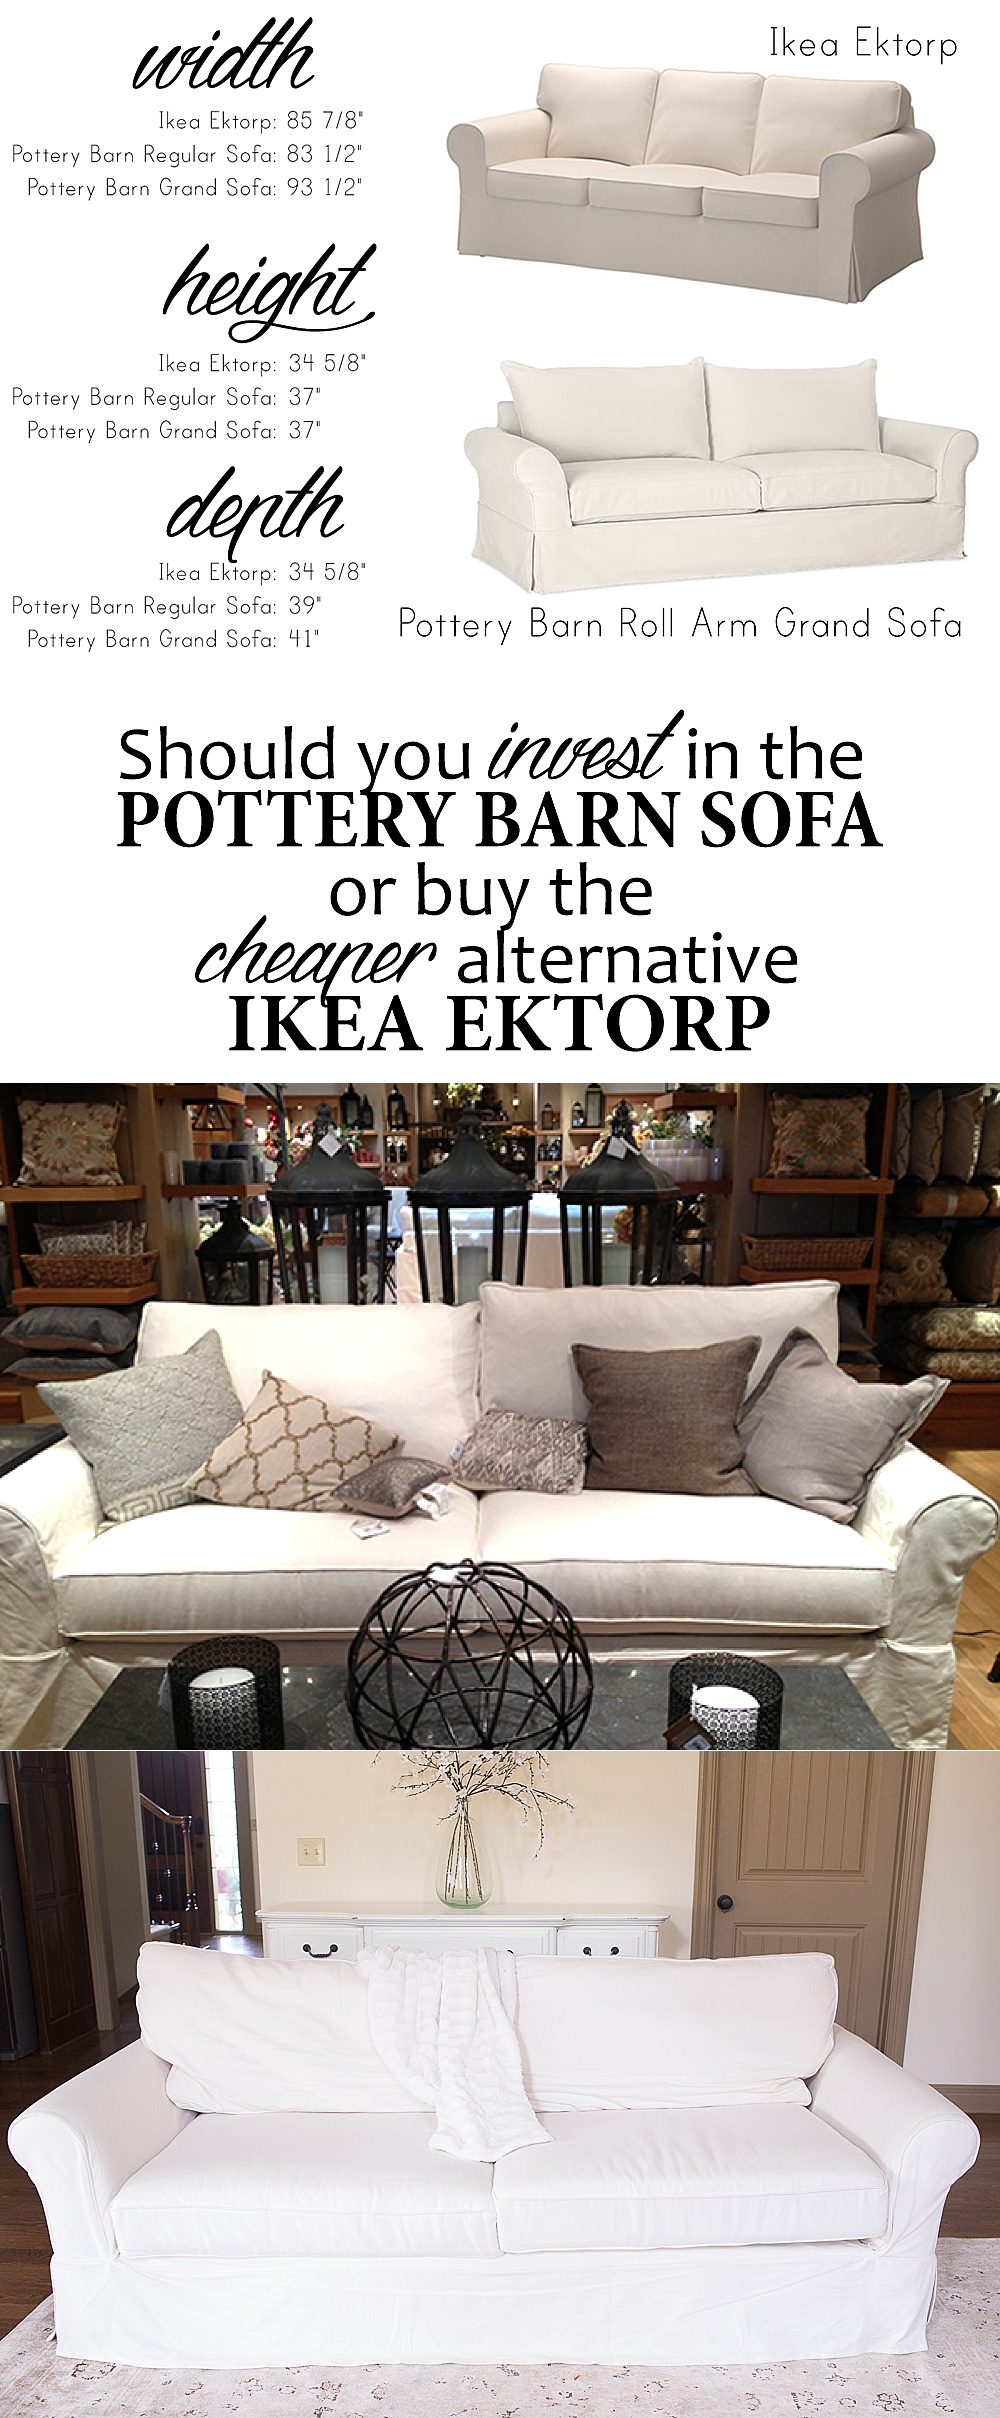 Dainty Ikea Versus Pottery Barn Sofa How To Choose A Couch Also Sofa Ikea Ektorp Versus Pottery Barn Sofa in Catch And Release Movie